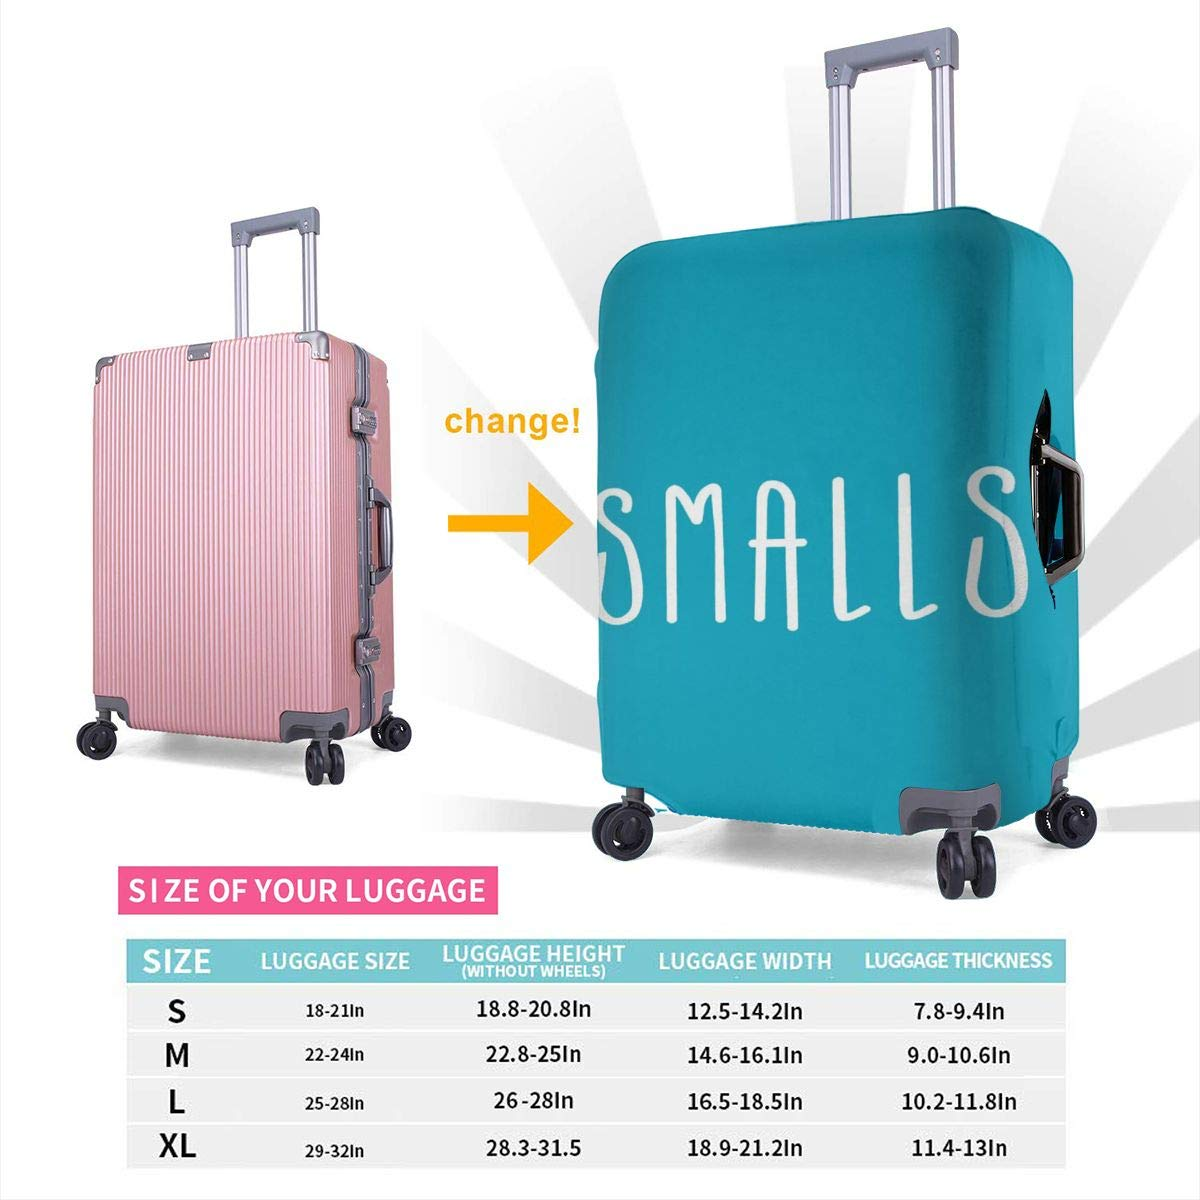 JHNDKJS Youre Killin Me Smalls 4 Travel Luggage Cover Baggage Suitcase Protector Fit for 12-18 Inch Luggage